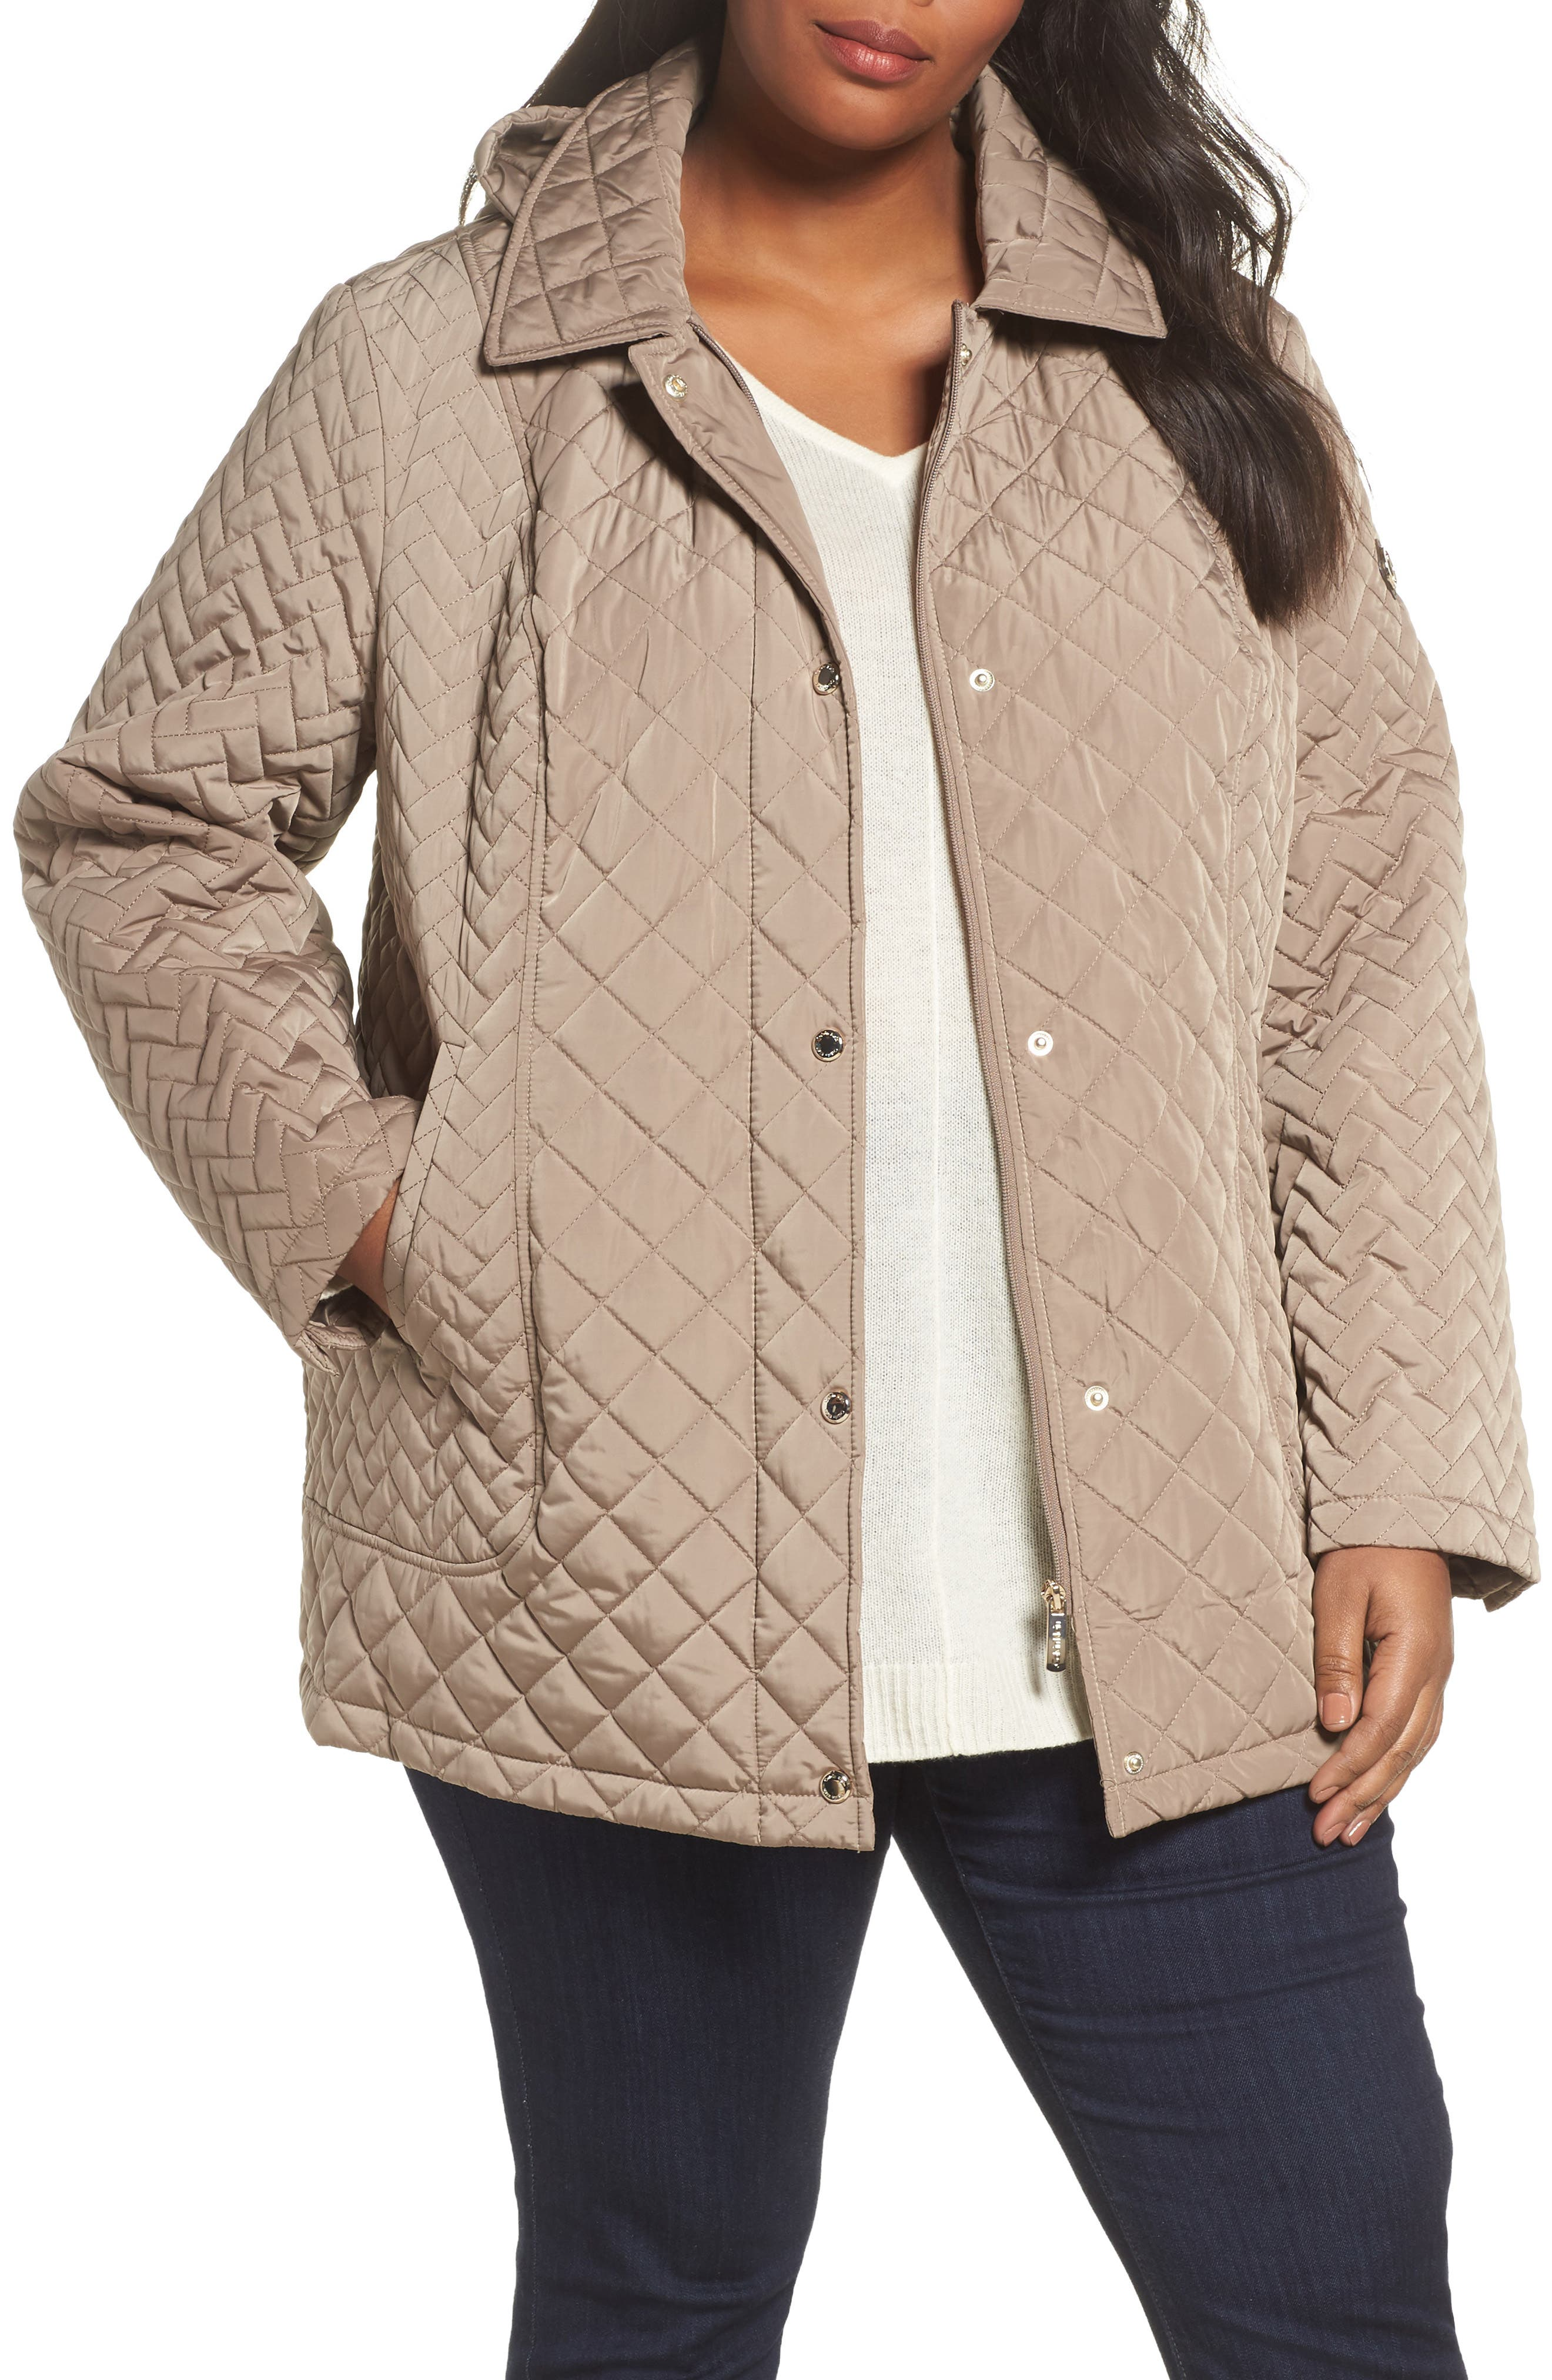 Water Resistant Diamond Quilted Jacket,                             Main thumbnail 1, color,                             021